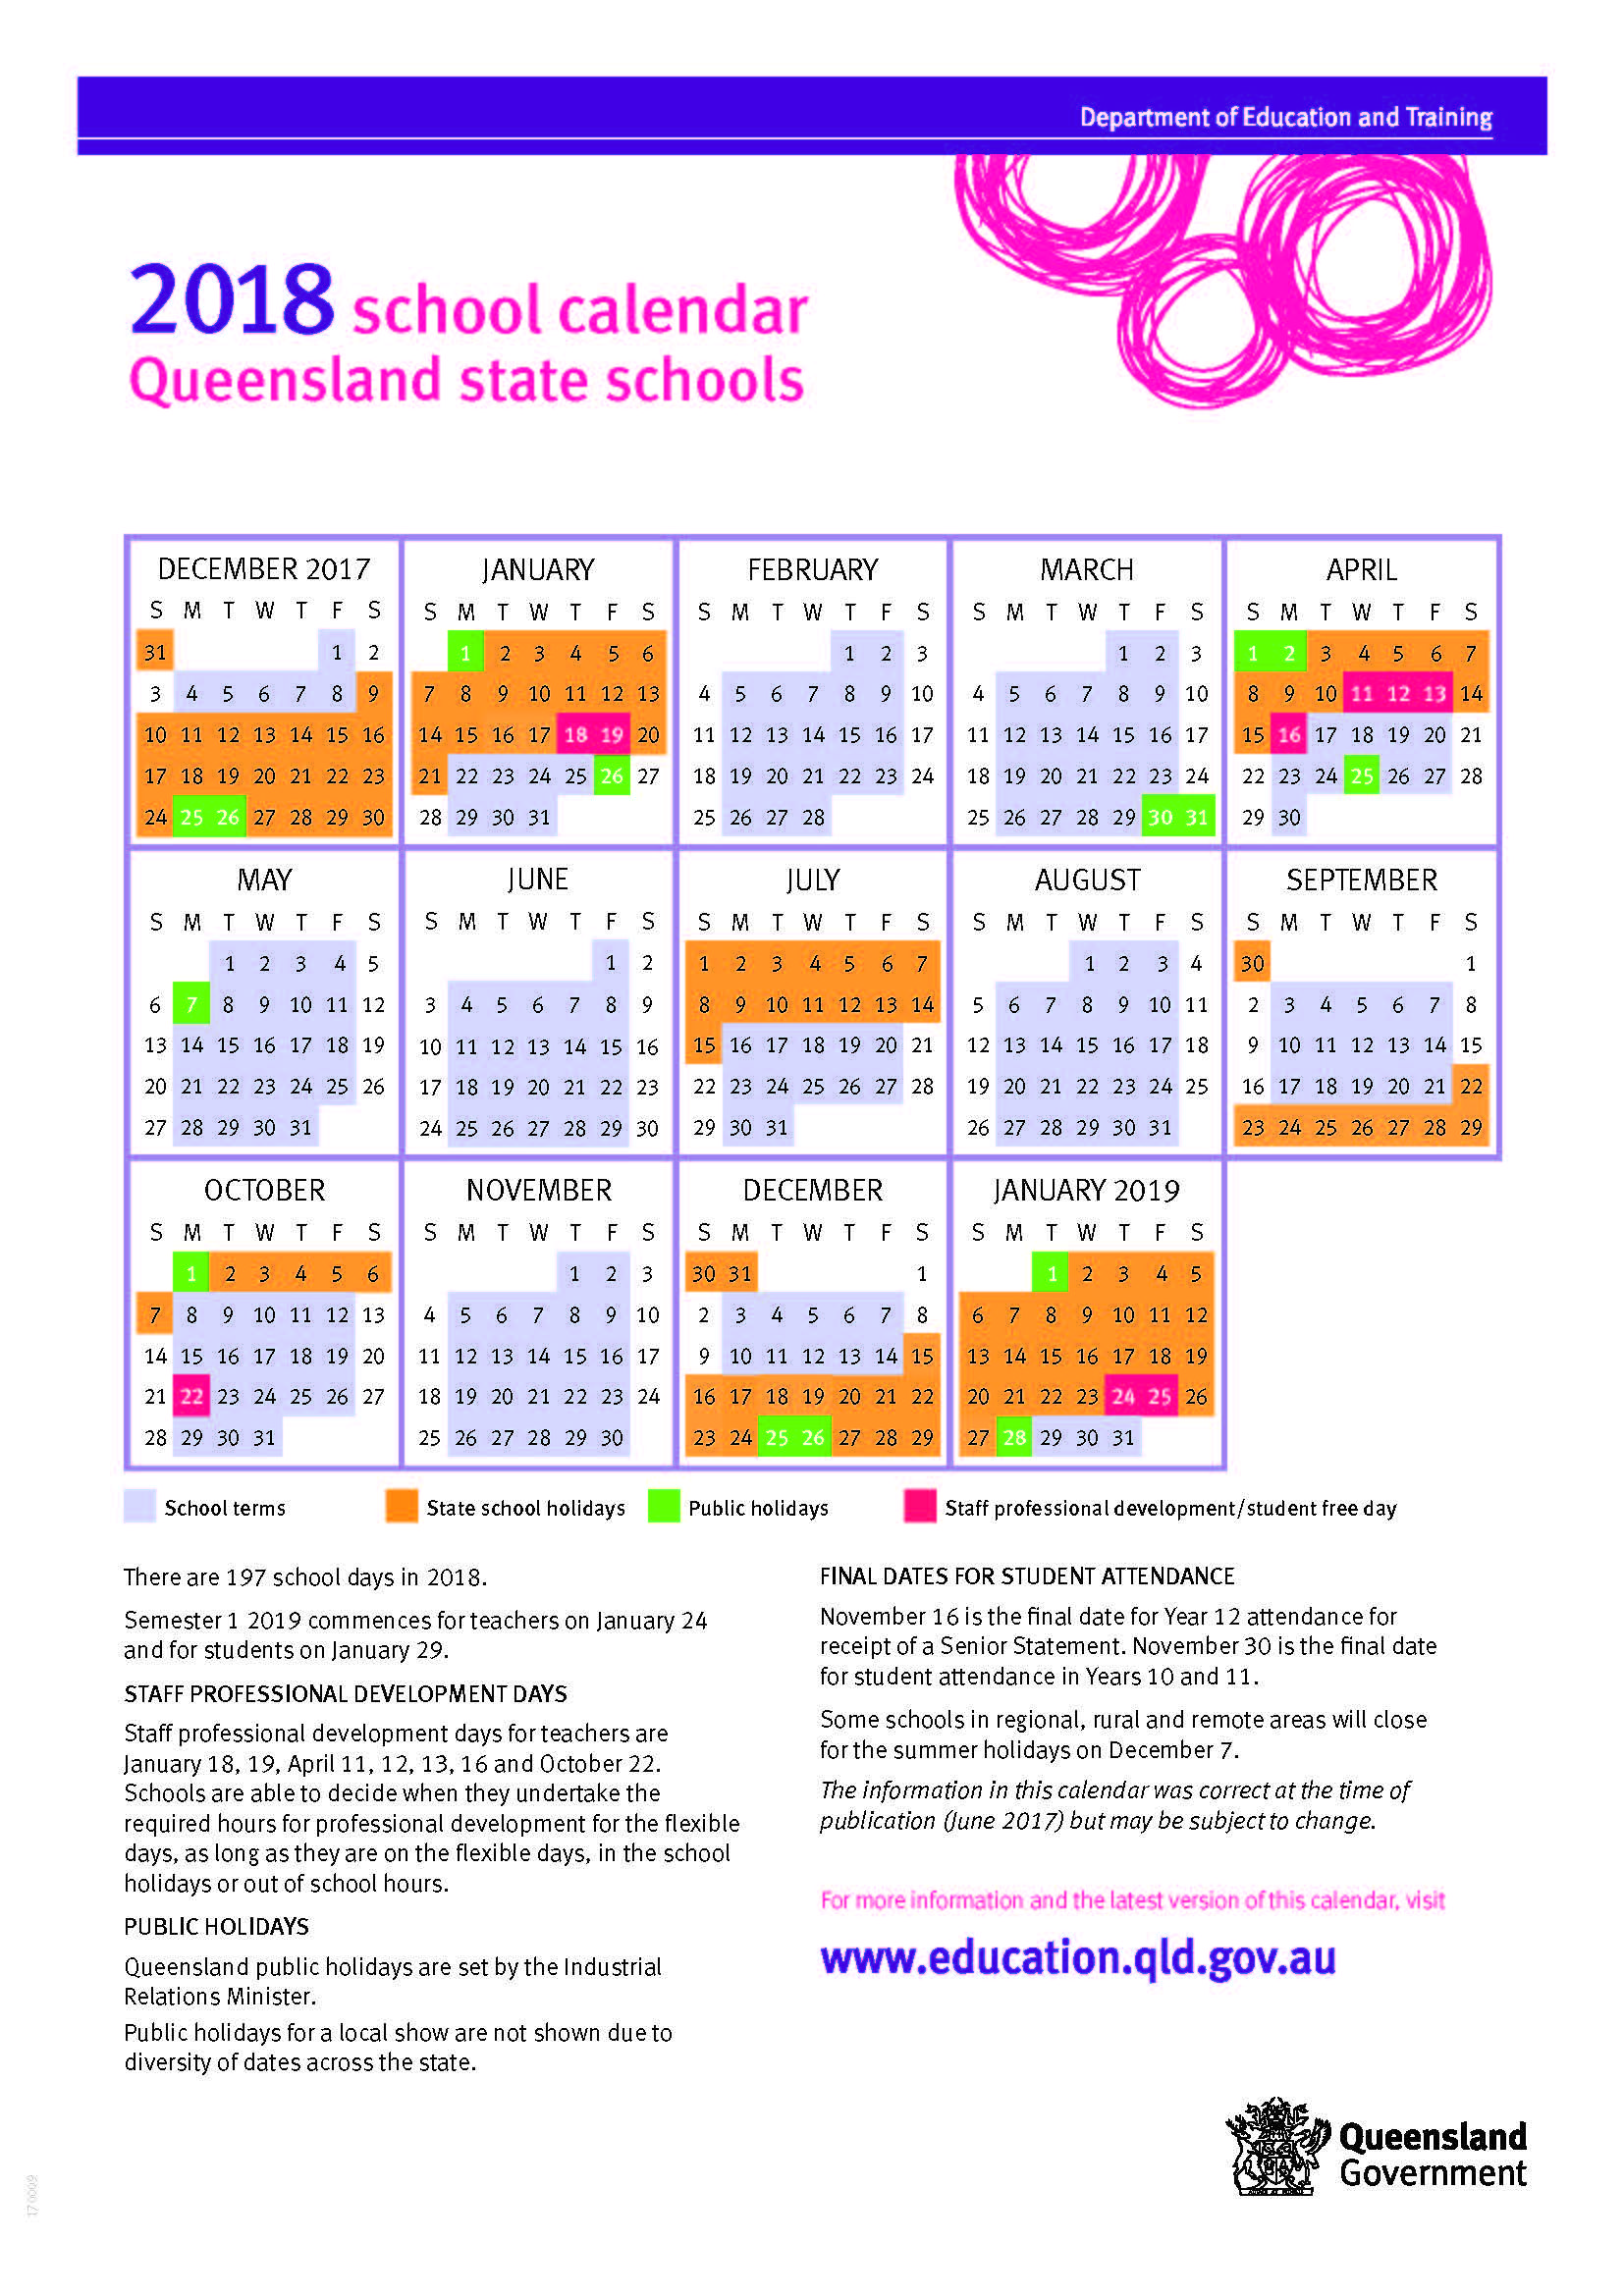 2018 queensland state school calendar